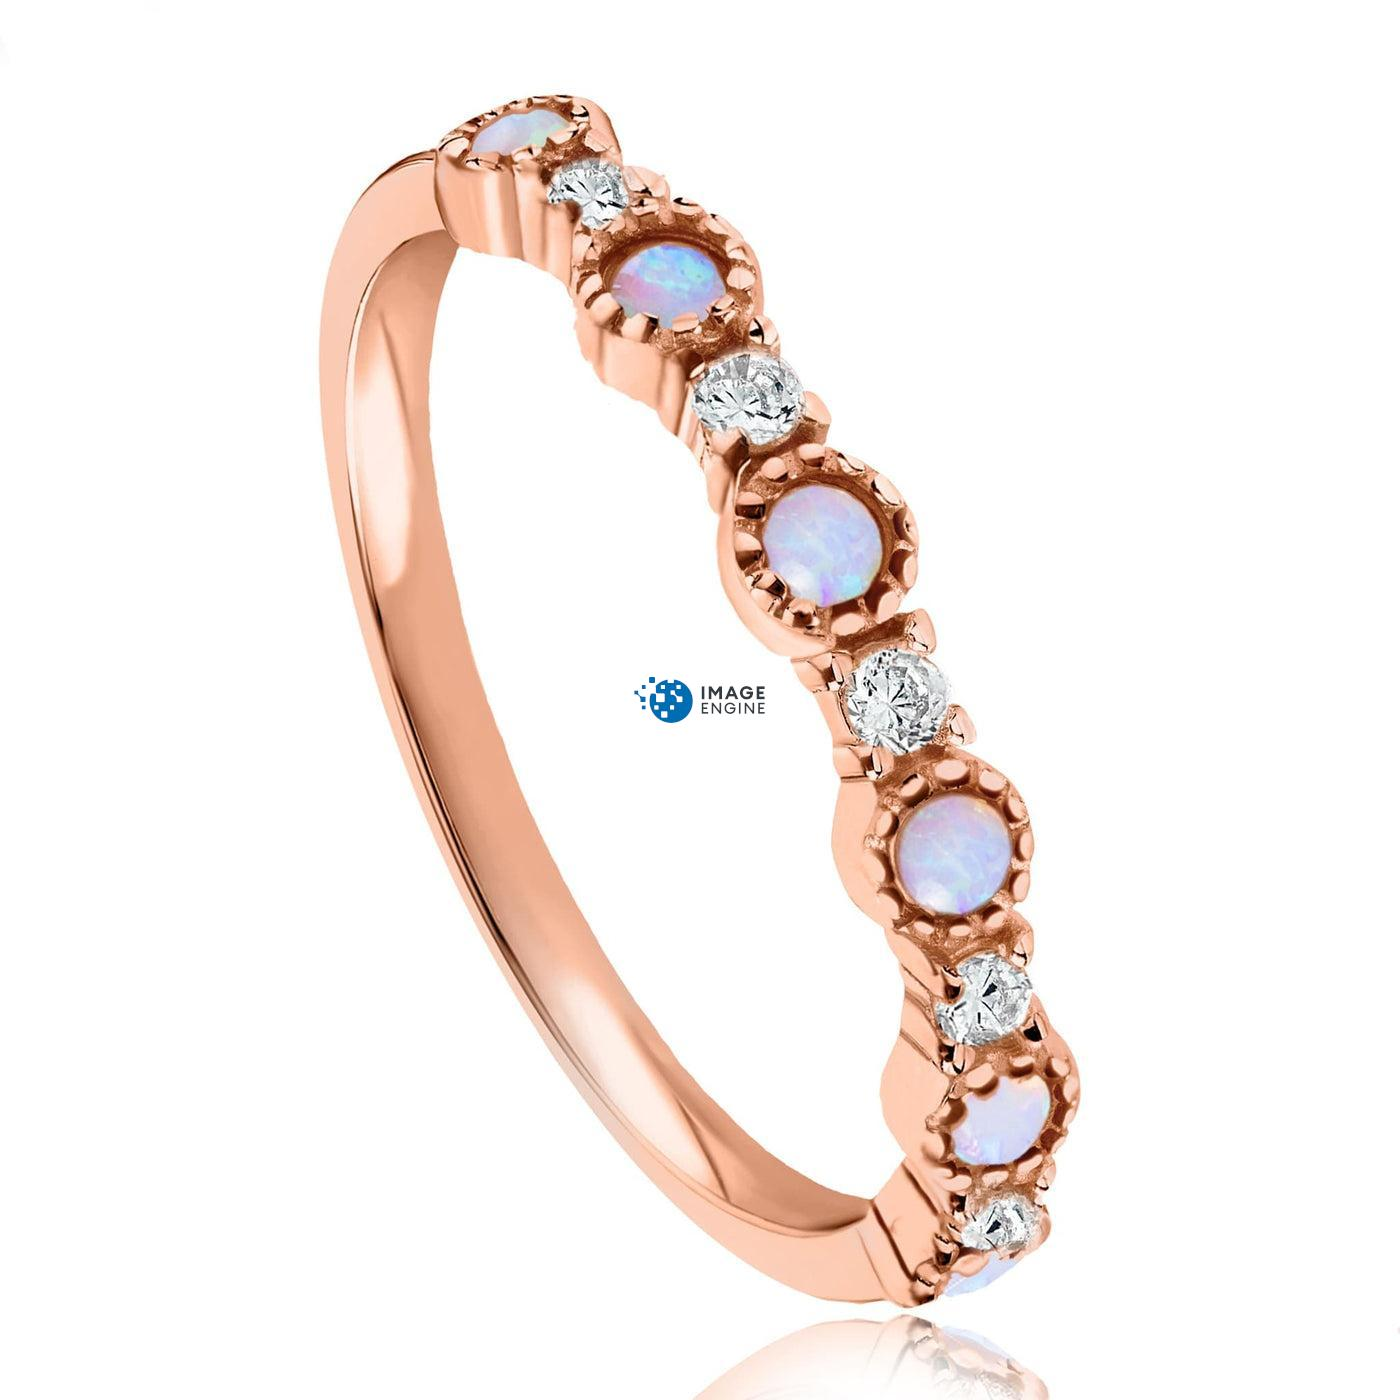 Debra Dots Opal Ring - Three Quarter View - 18K Rose Gold Vermeil